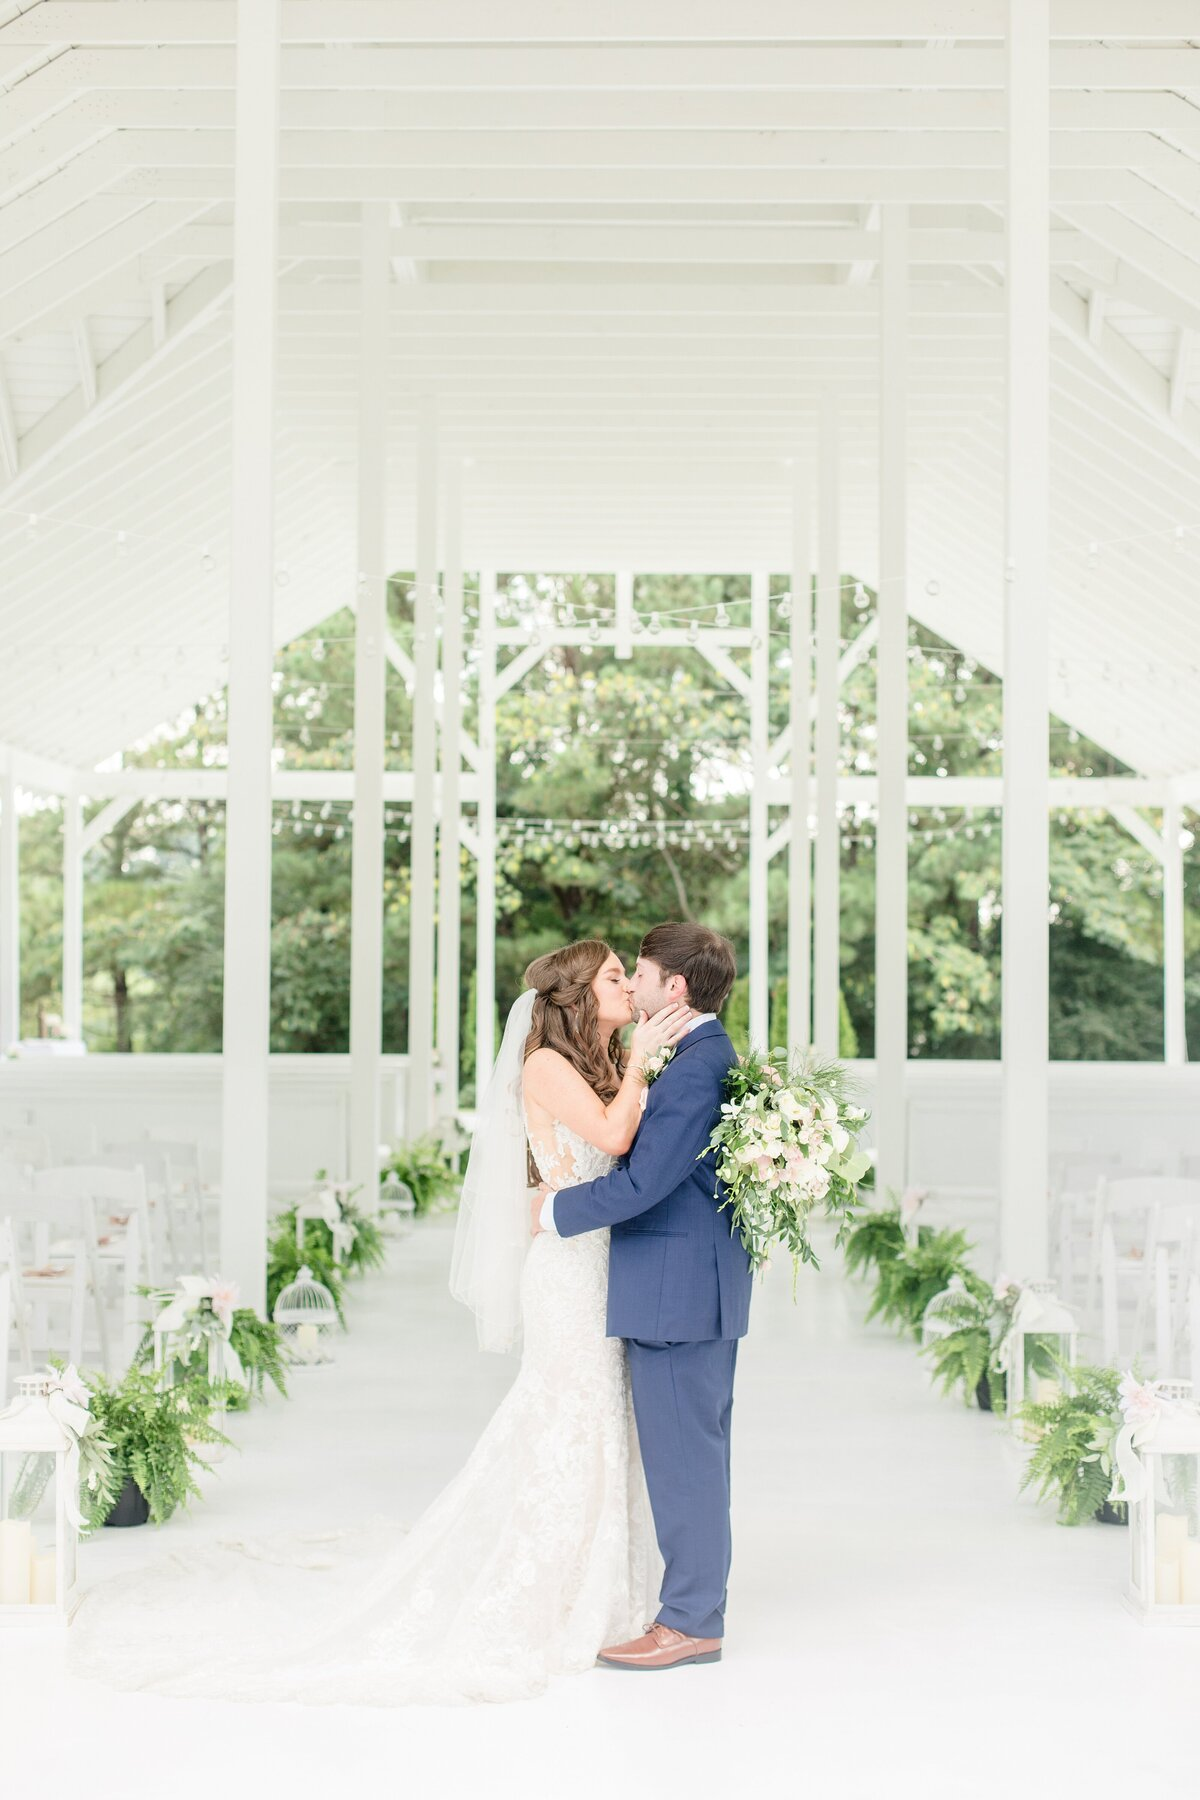 Wedding Gallery - A&J Birmingham, Alabama Wedding & Engagement Photographers - Katie & Alec Photography 65